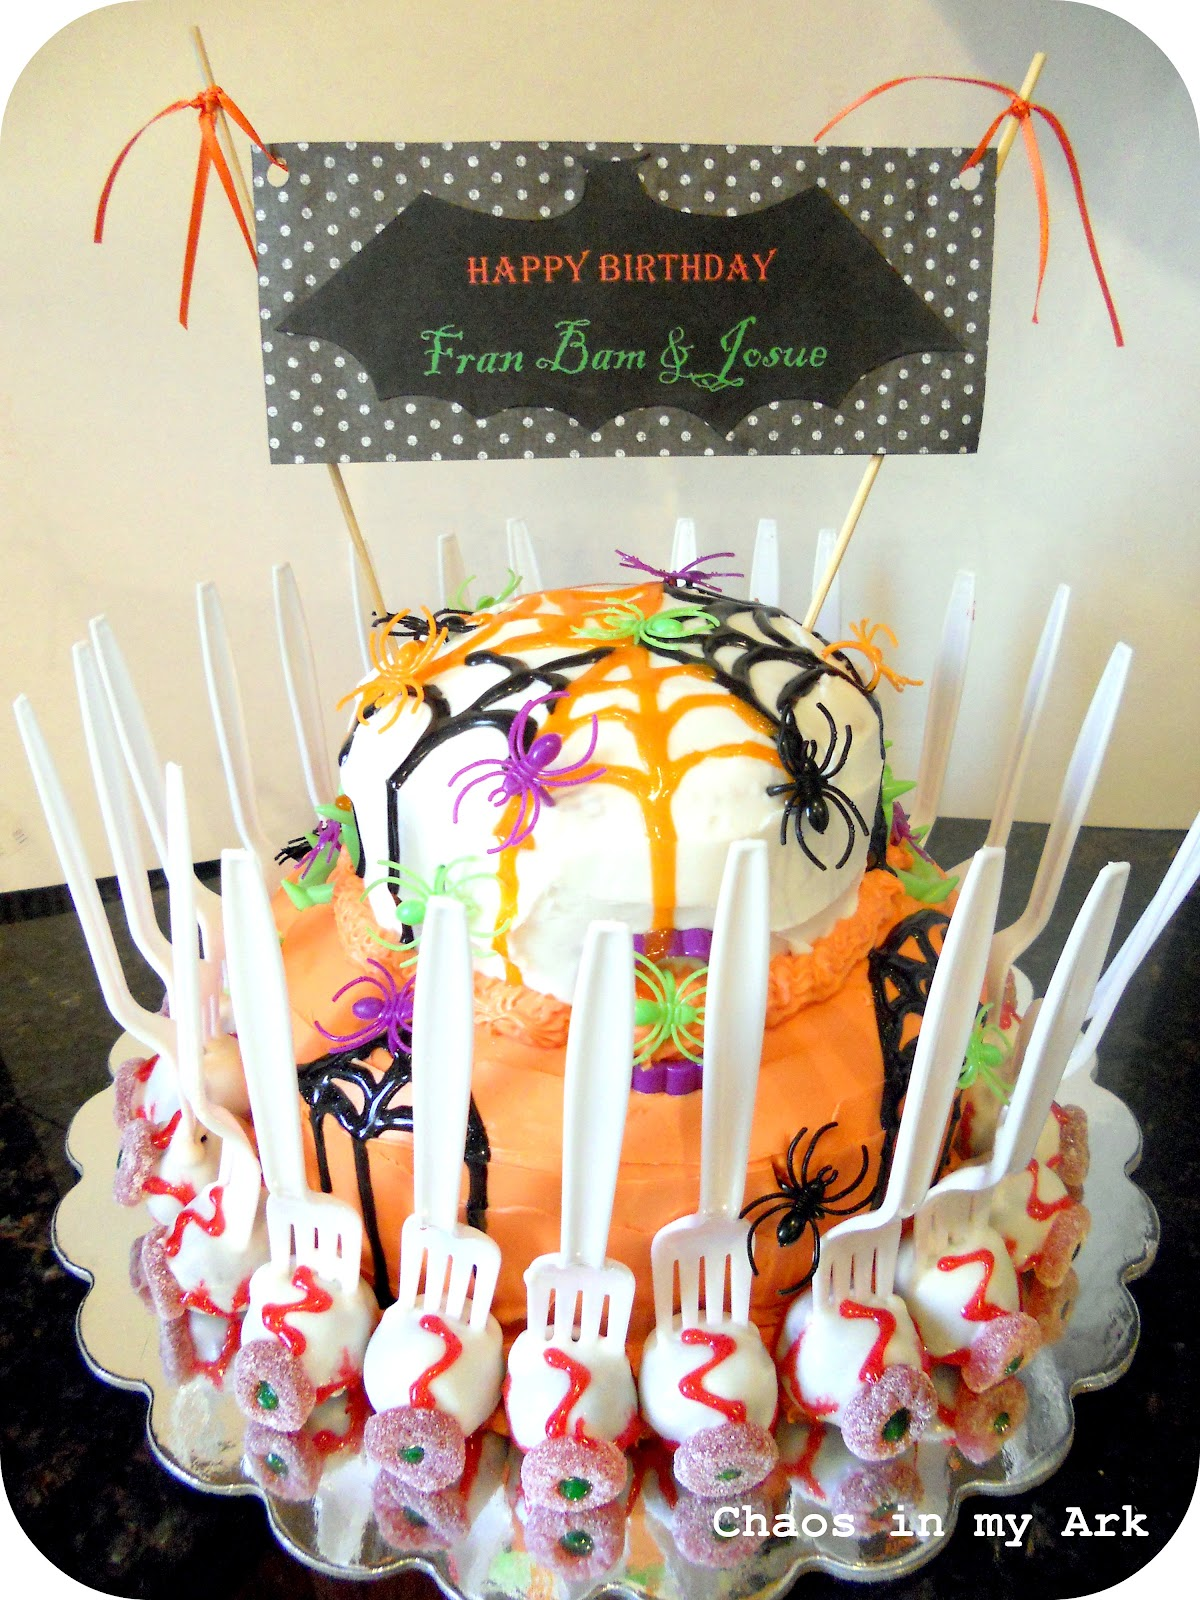 Chaos In My Ark Halloween Cakes Cake Pop Eyeballs And Spiderwebs